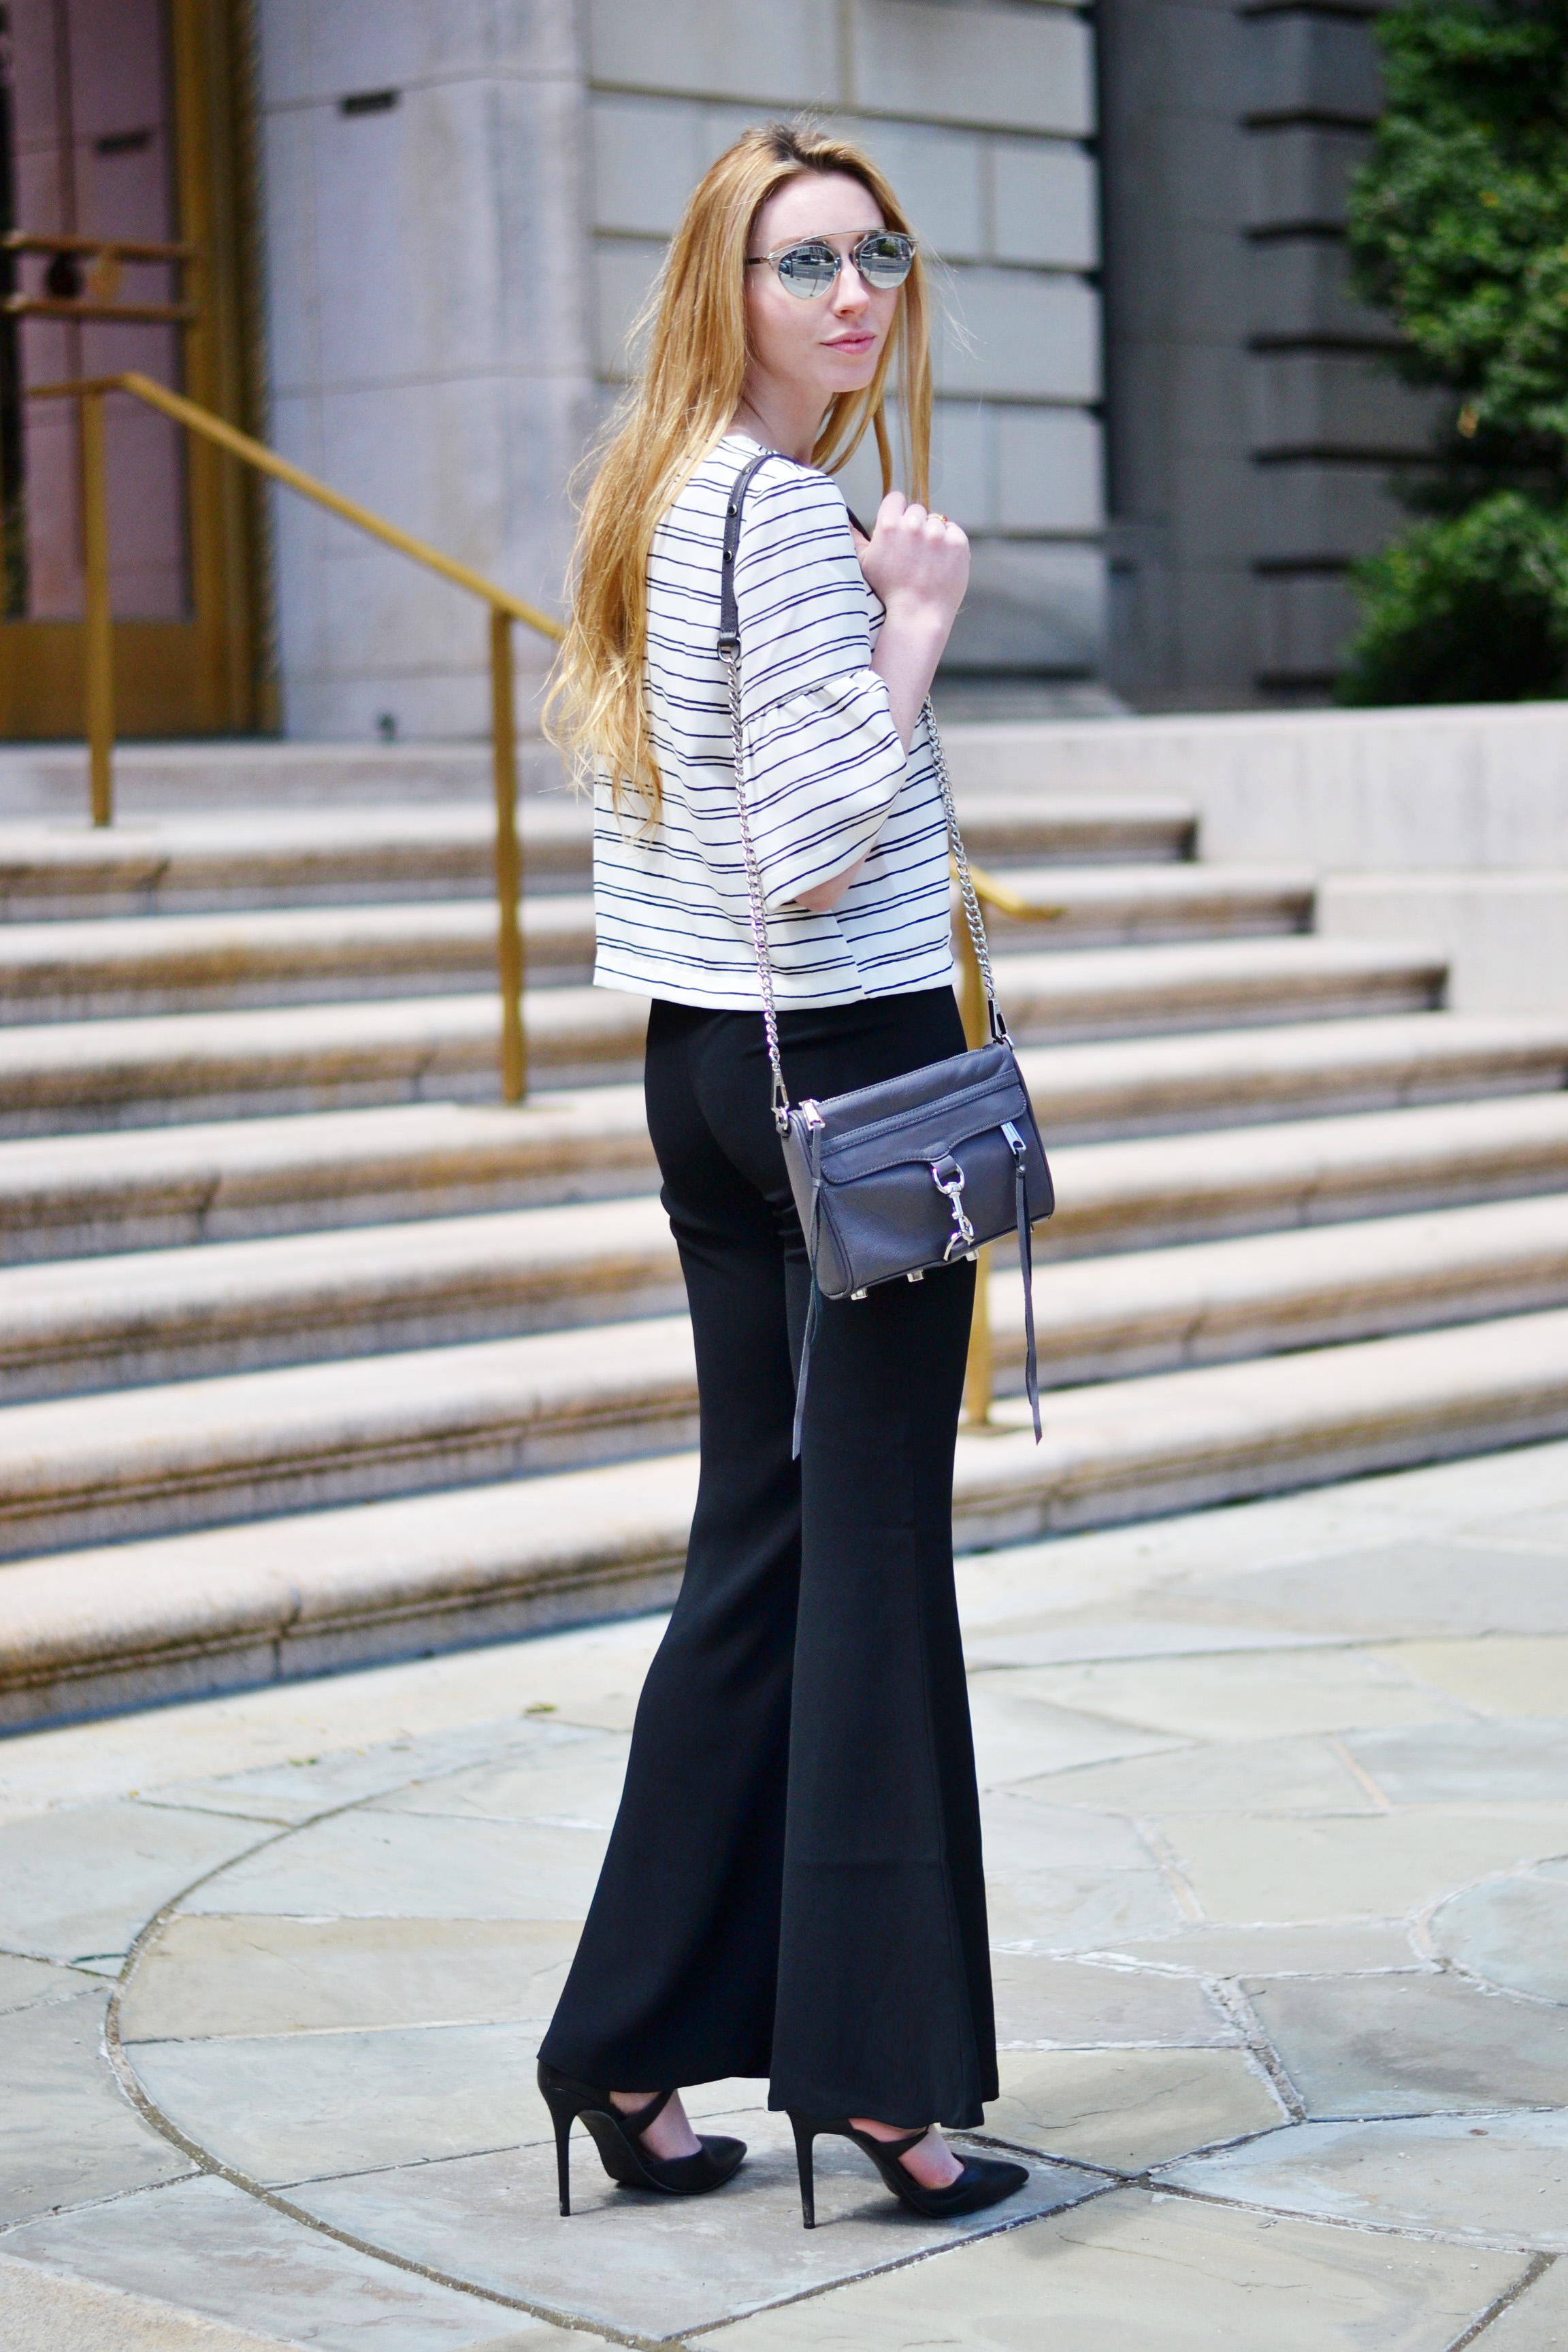 WhoWhatWear Collection Top & Flared Pants (via Chic Now)